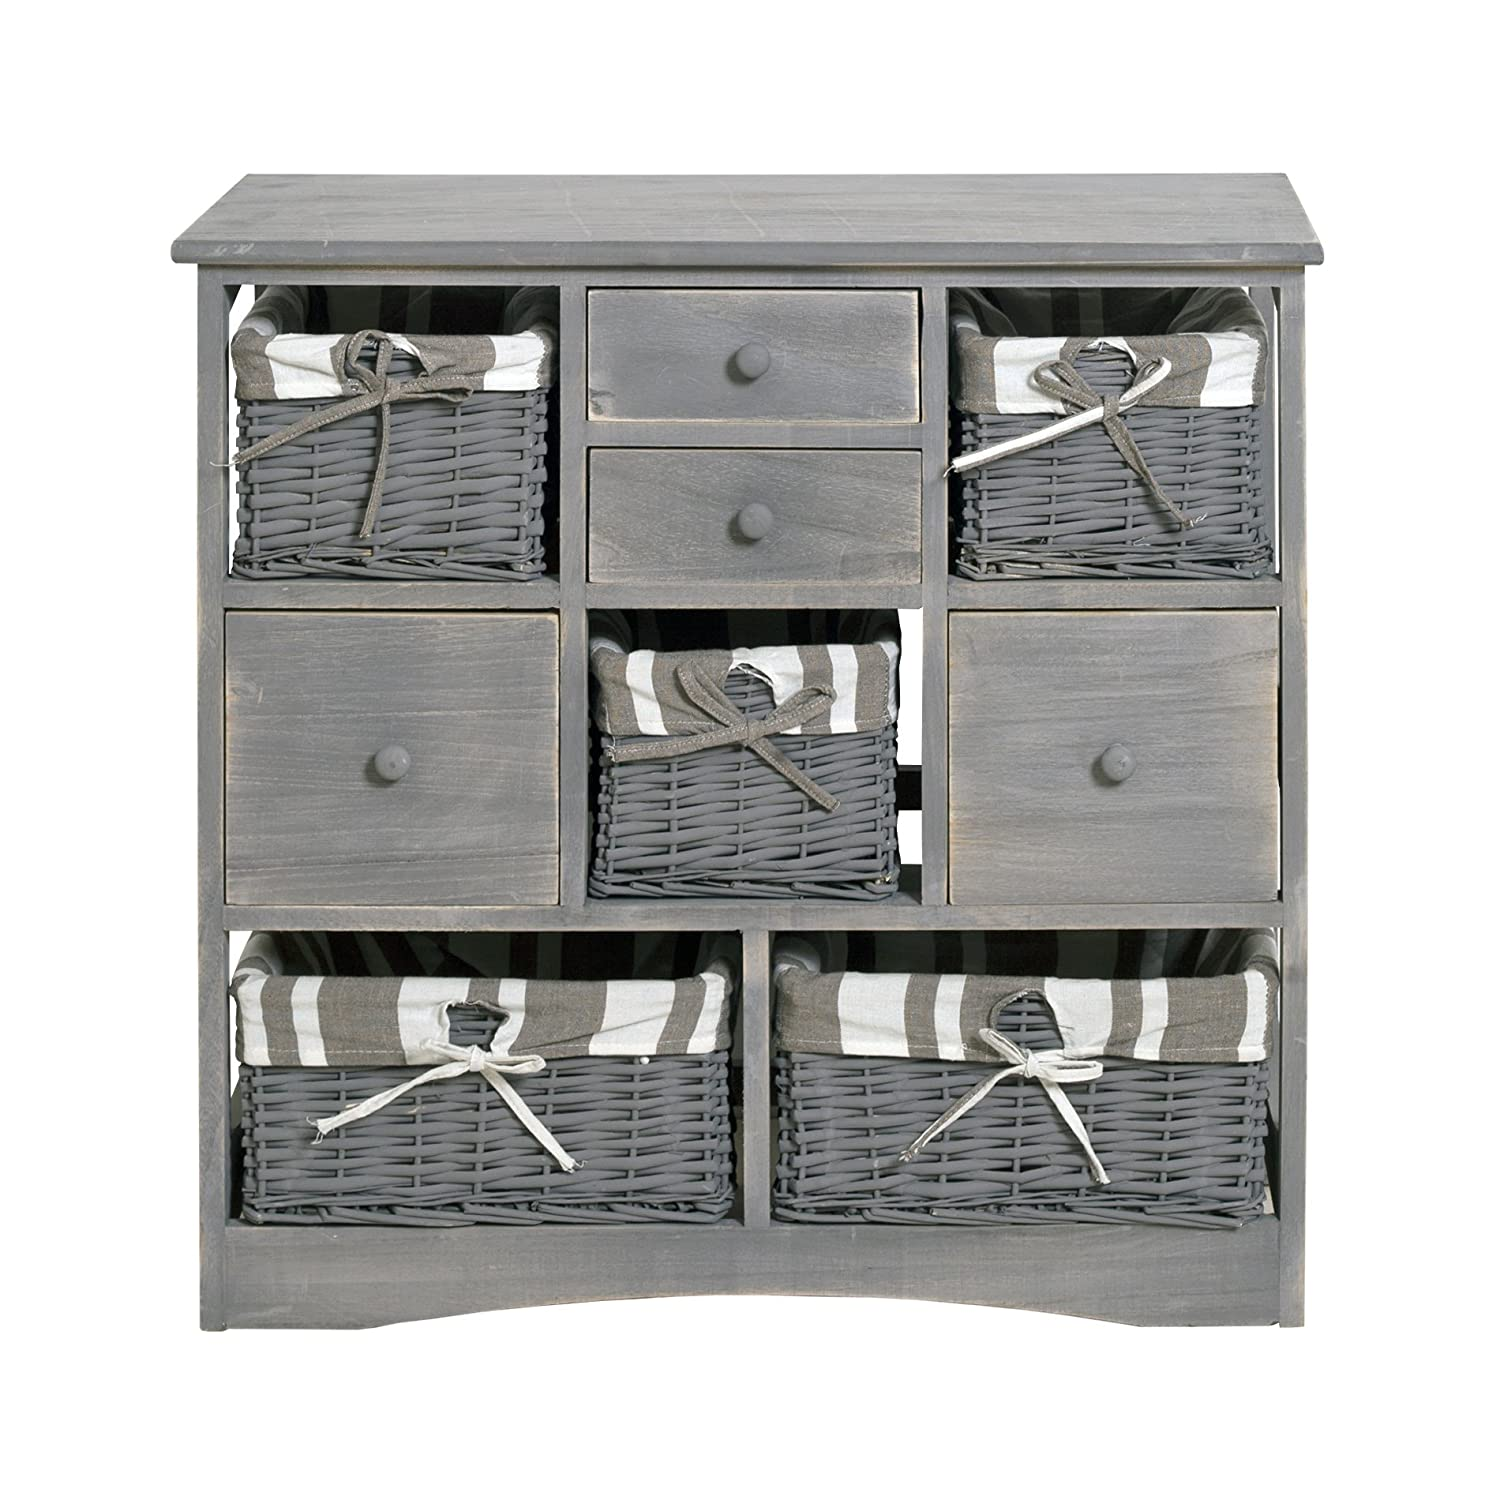 Rebecca srl Sideboard Chest of Drawers 4 Drawers 4 Basket Wicker Fabric Wood Grey Vintage Style Kitchen Dining Room (cod. 0-1665)